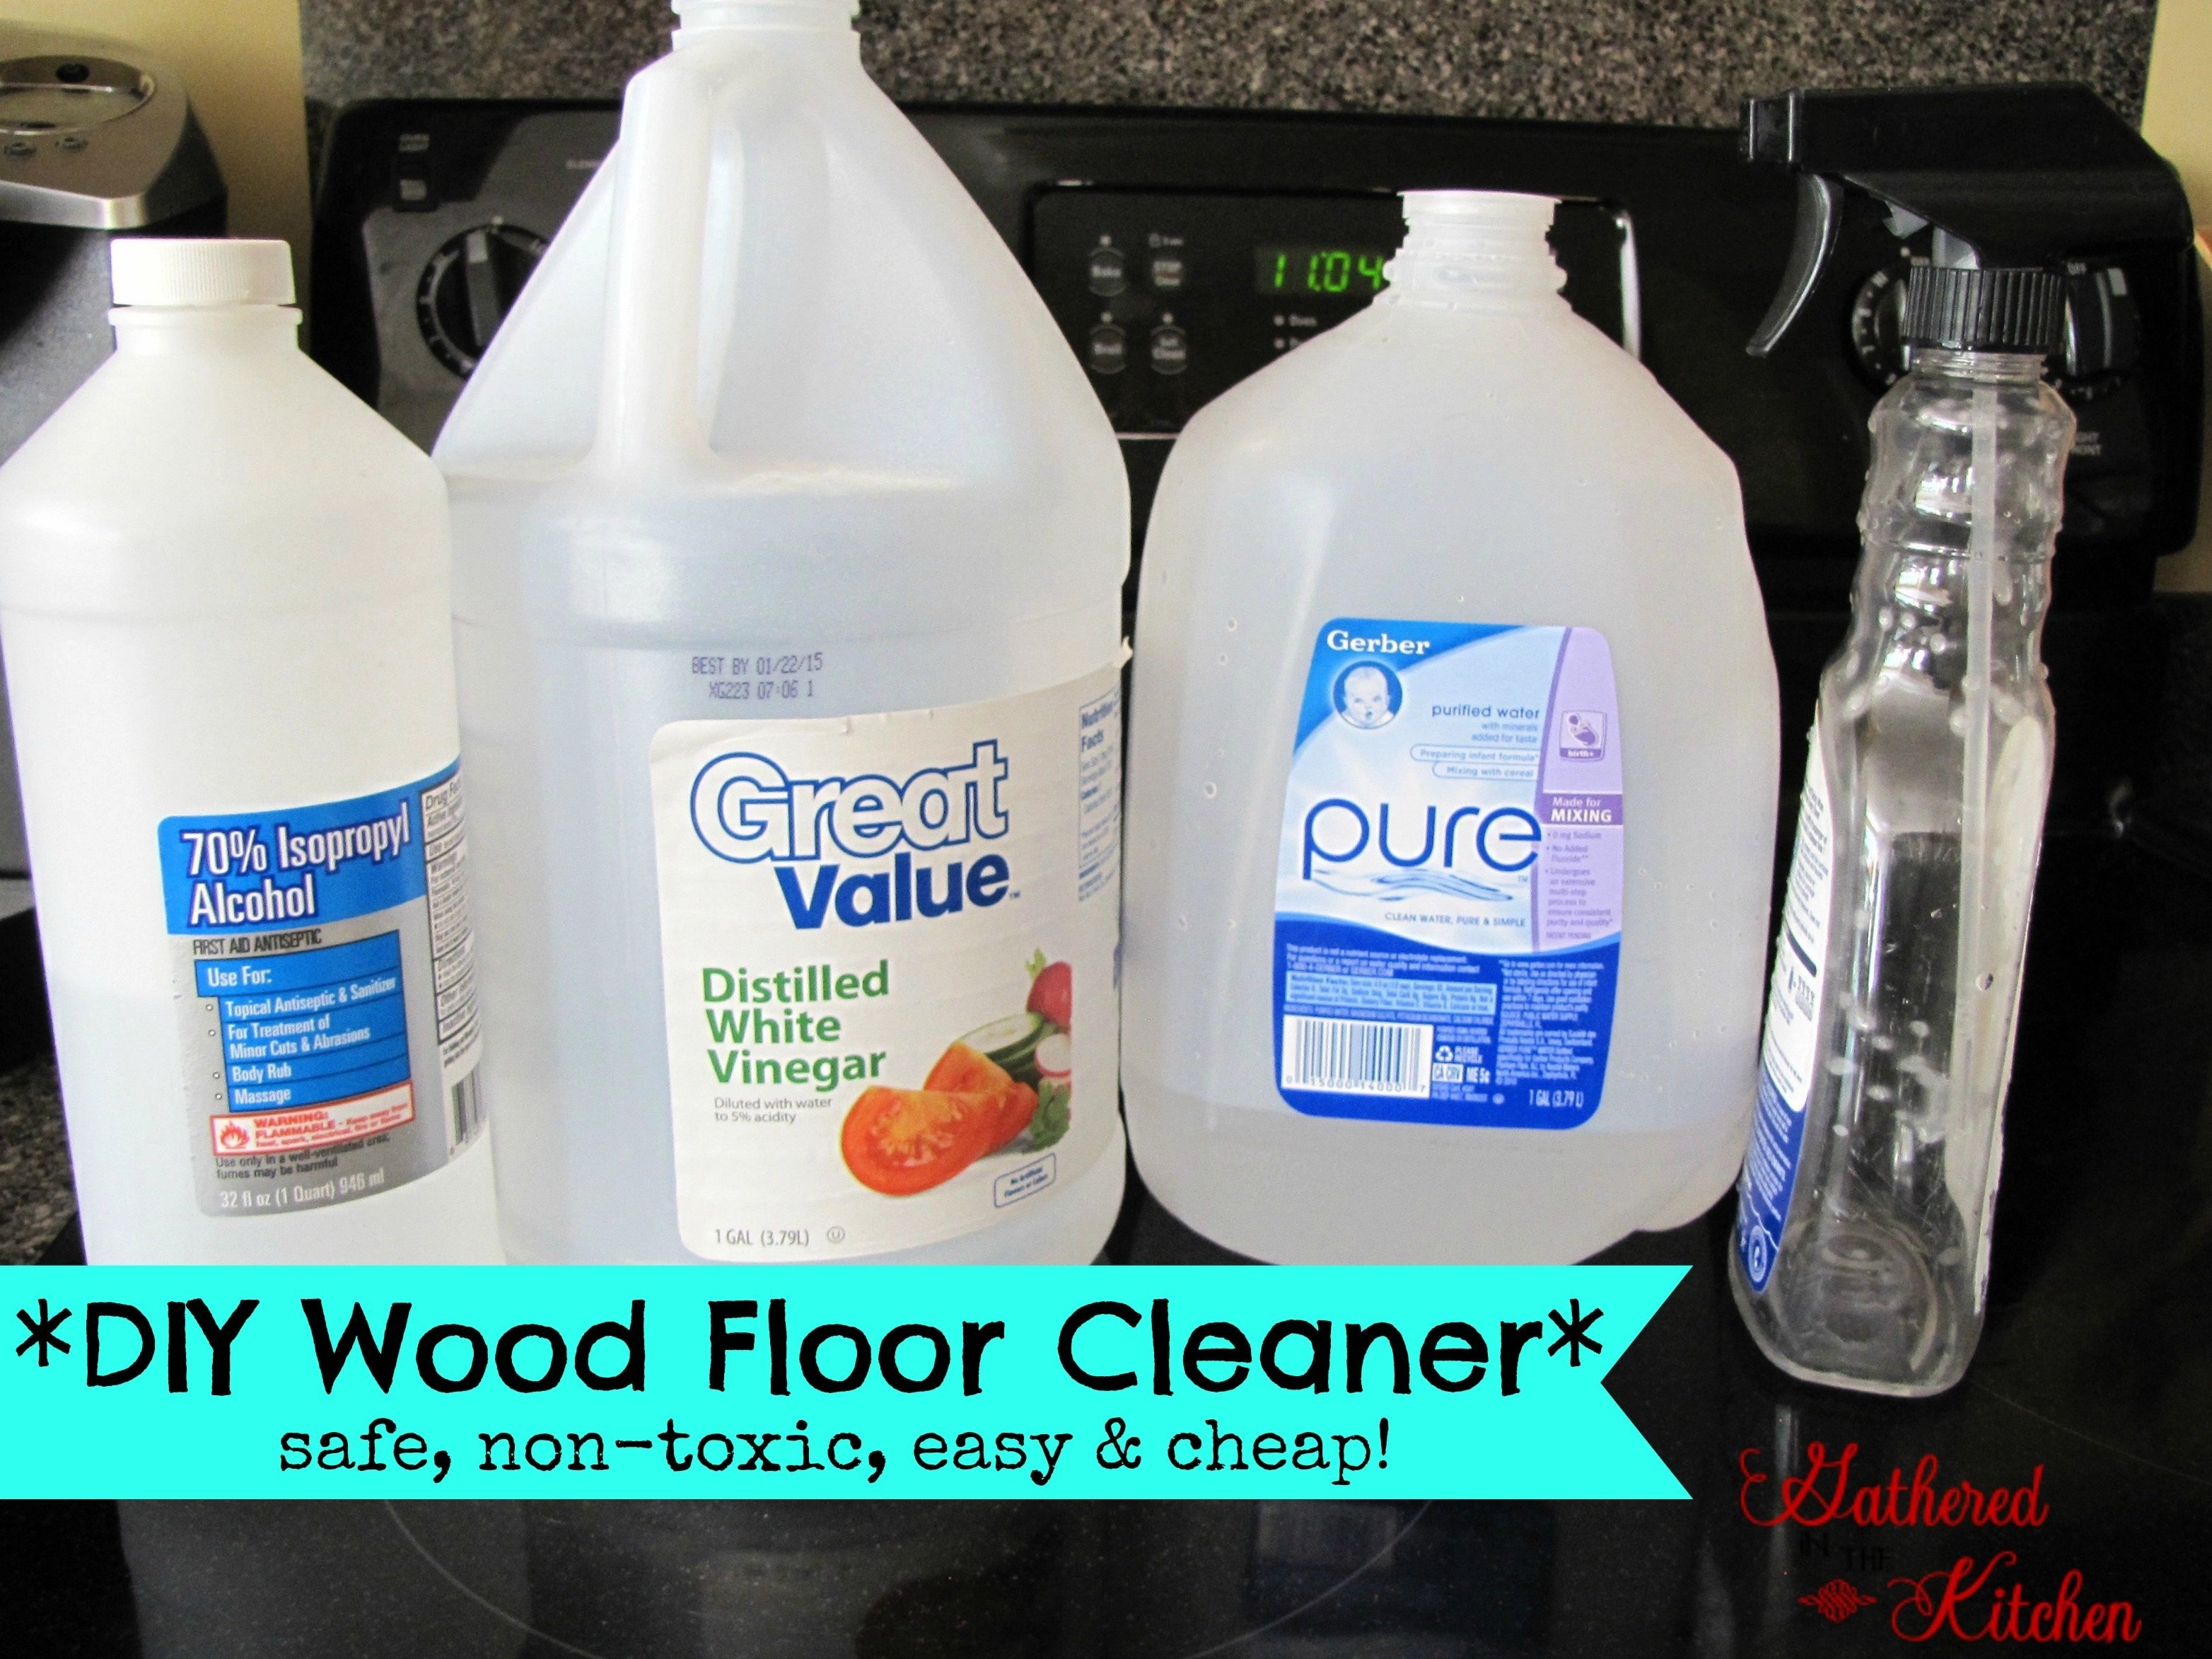 DIY wood floor cleaner: safe, nontoxic, easy and cheap